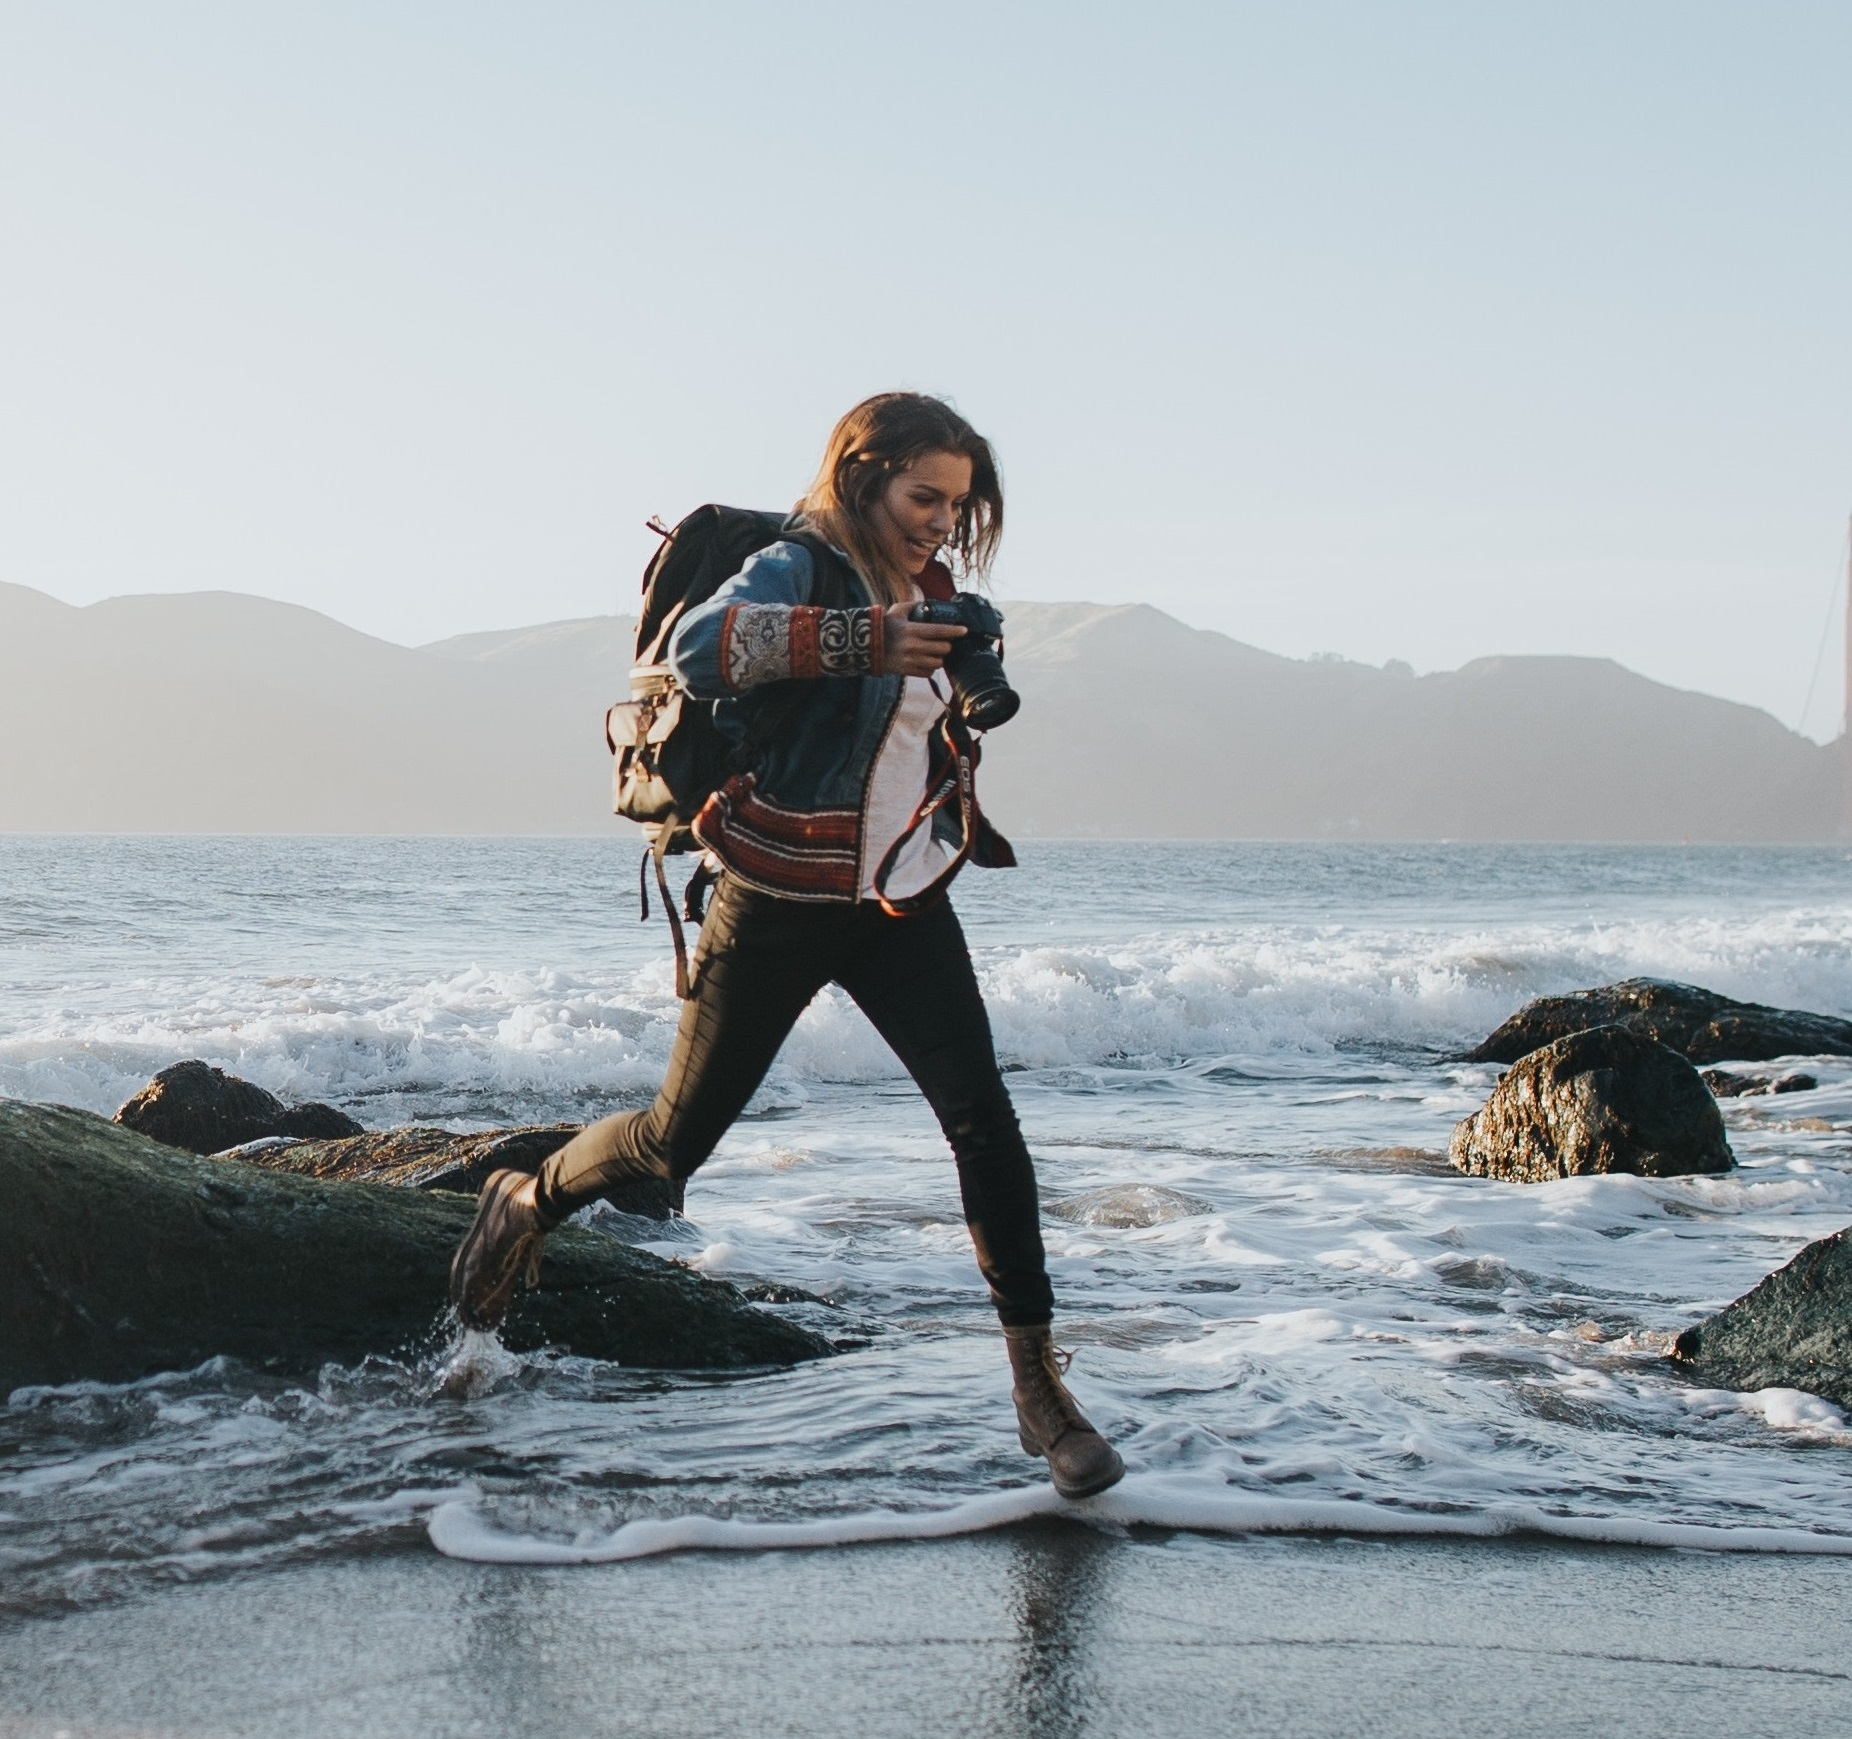 A young woman wearing a backpack and hiking gear smiles as she runs through water lapping at the shore